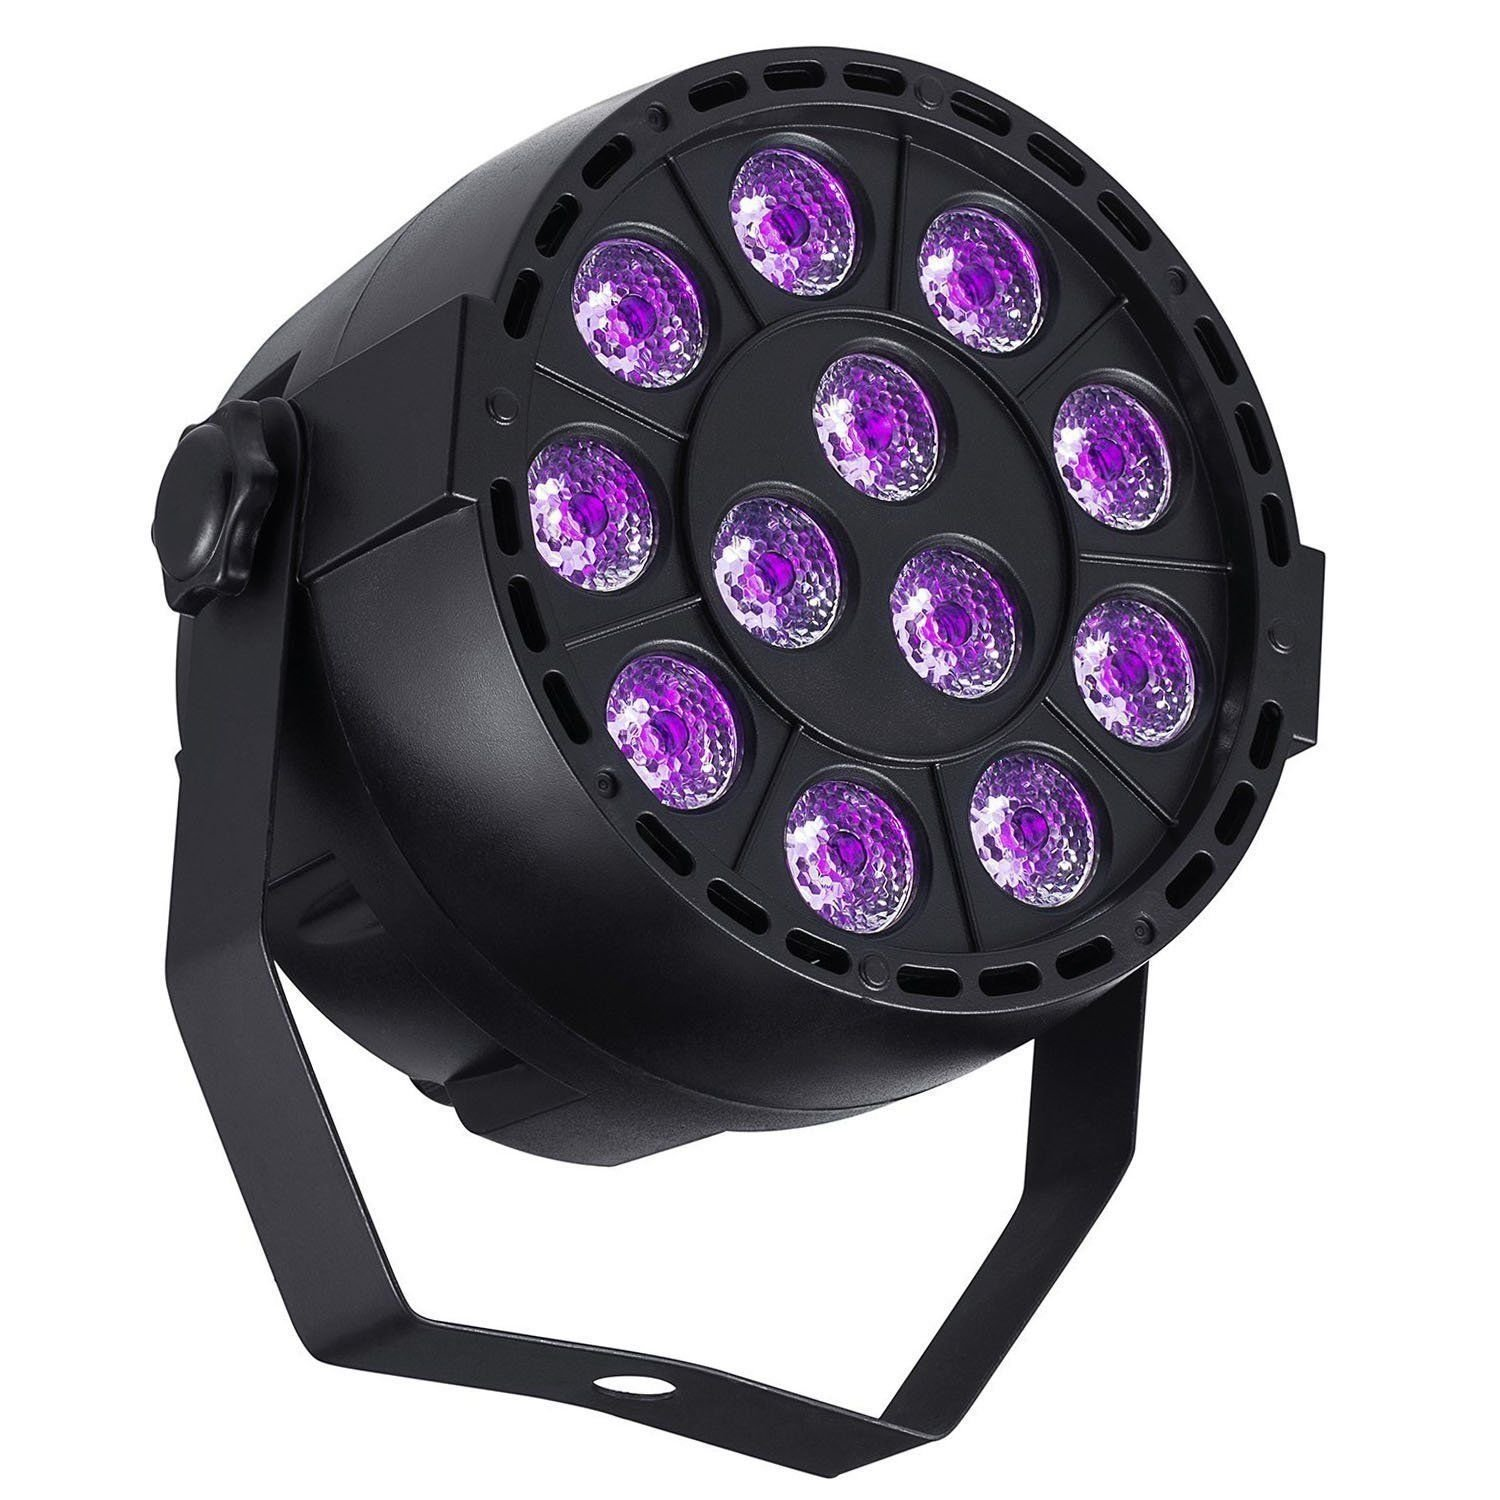 DeepDream 36W Black Light UV LED Lamp DJ Blacklights Ultraviolet Bulb Auto Lighting Voice Control for Party Stage Wedding Disco Club